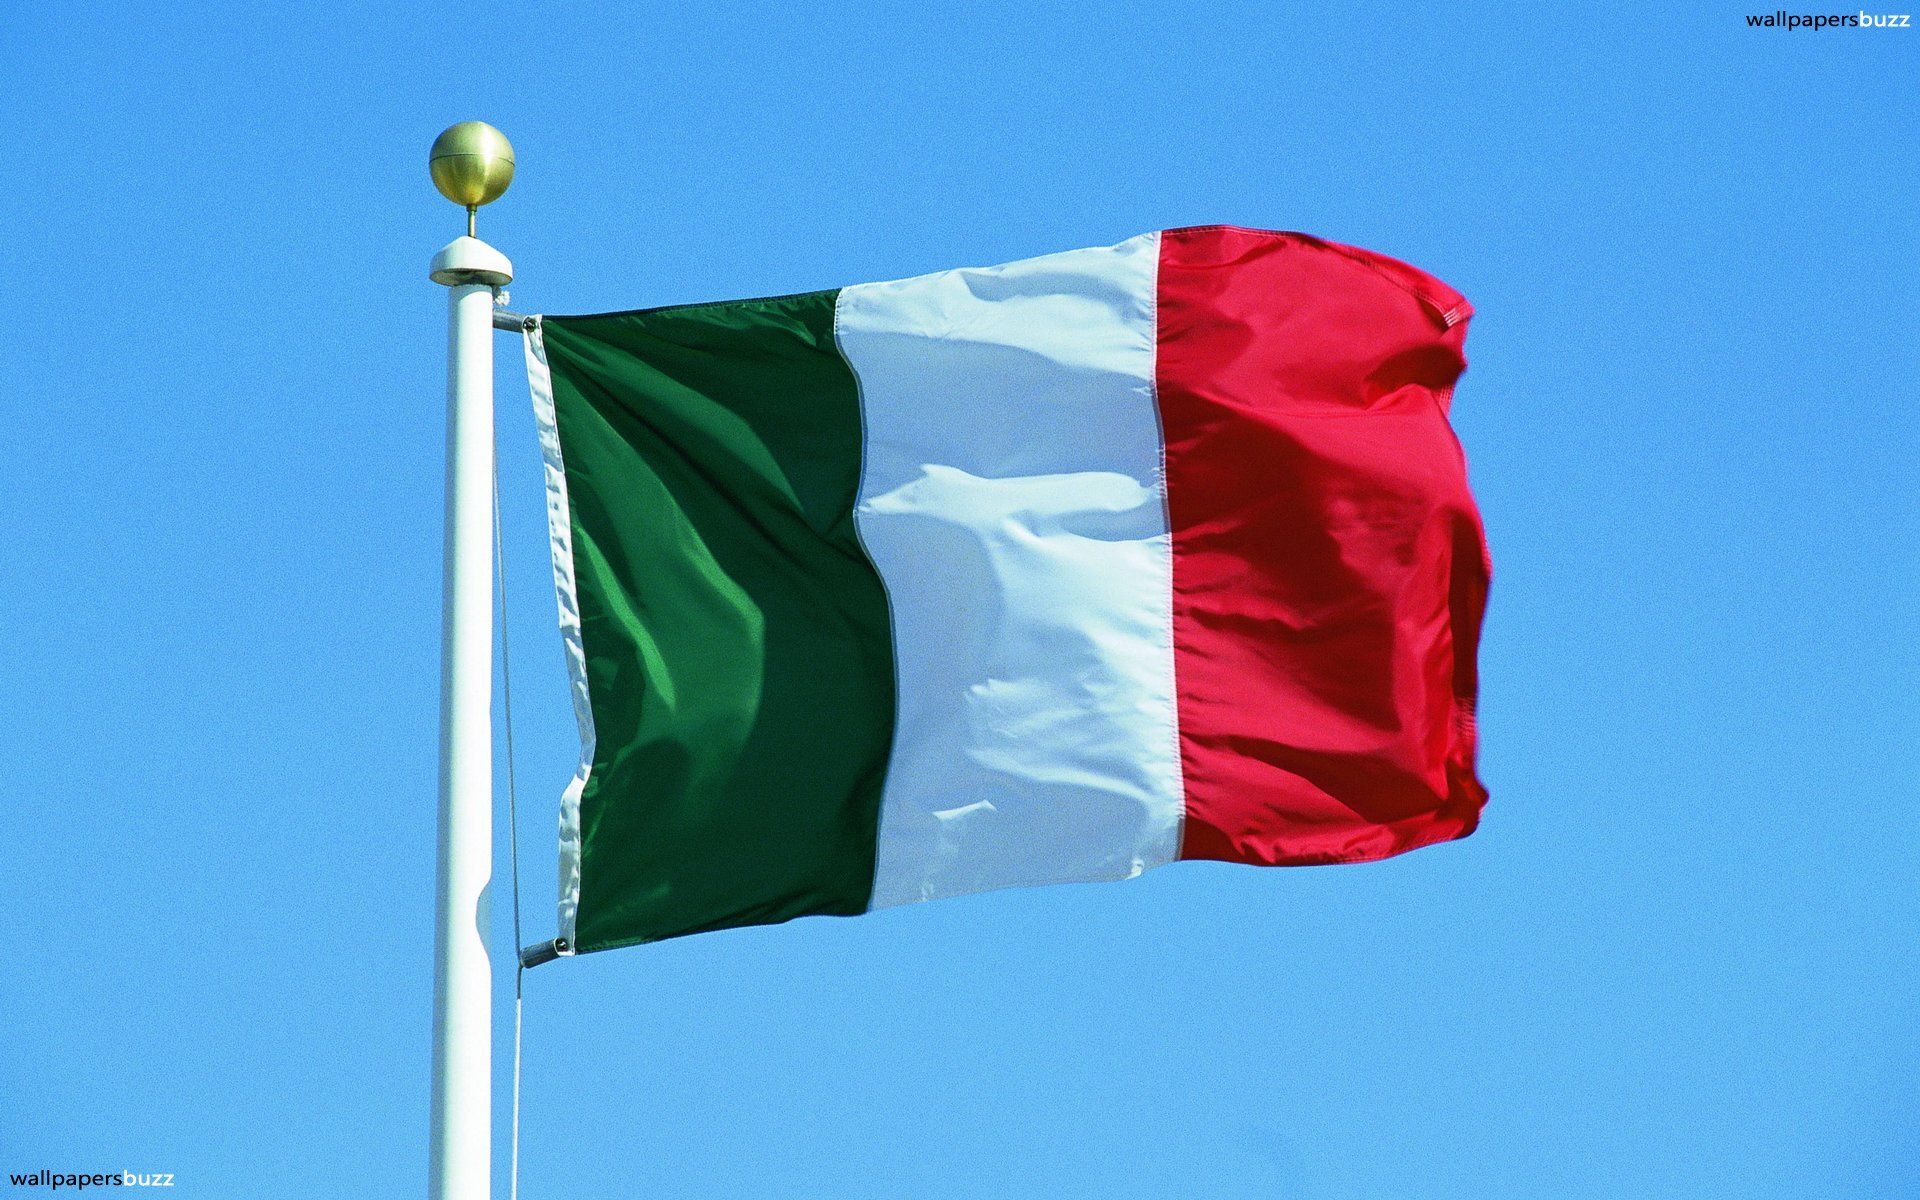 The traditional flag of Italy HD Wallpaper 1920x1200